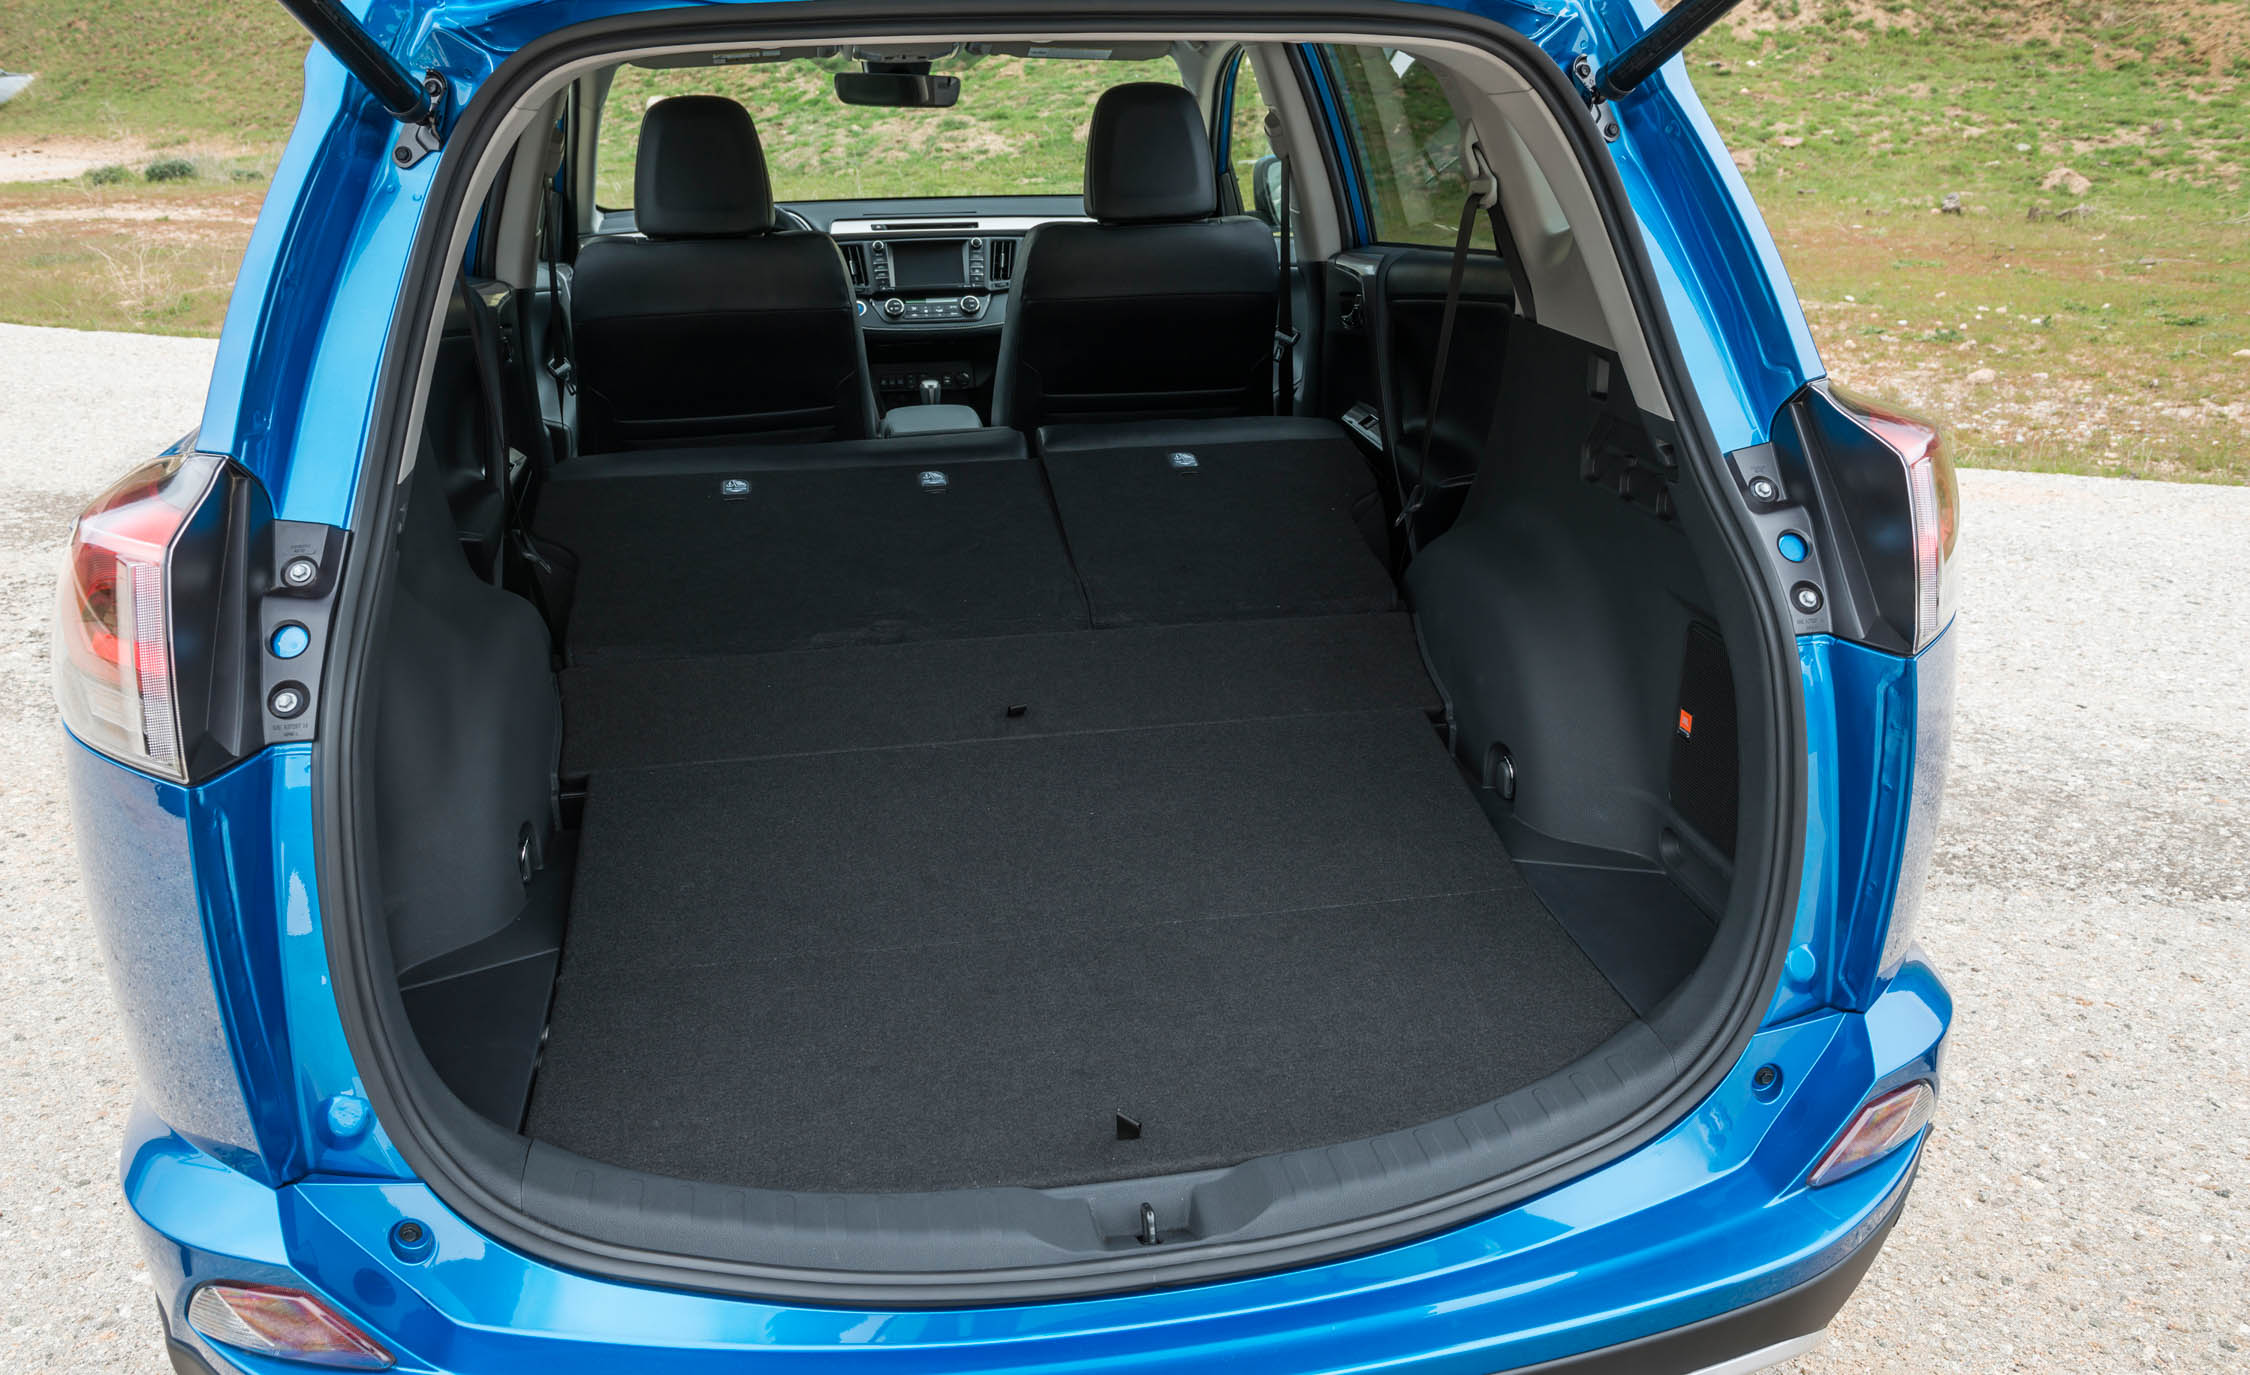 2016 Toyota RAV4 Hybrid Interior Cargo Space with Folded Seats